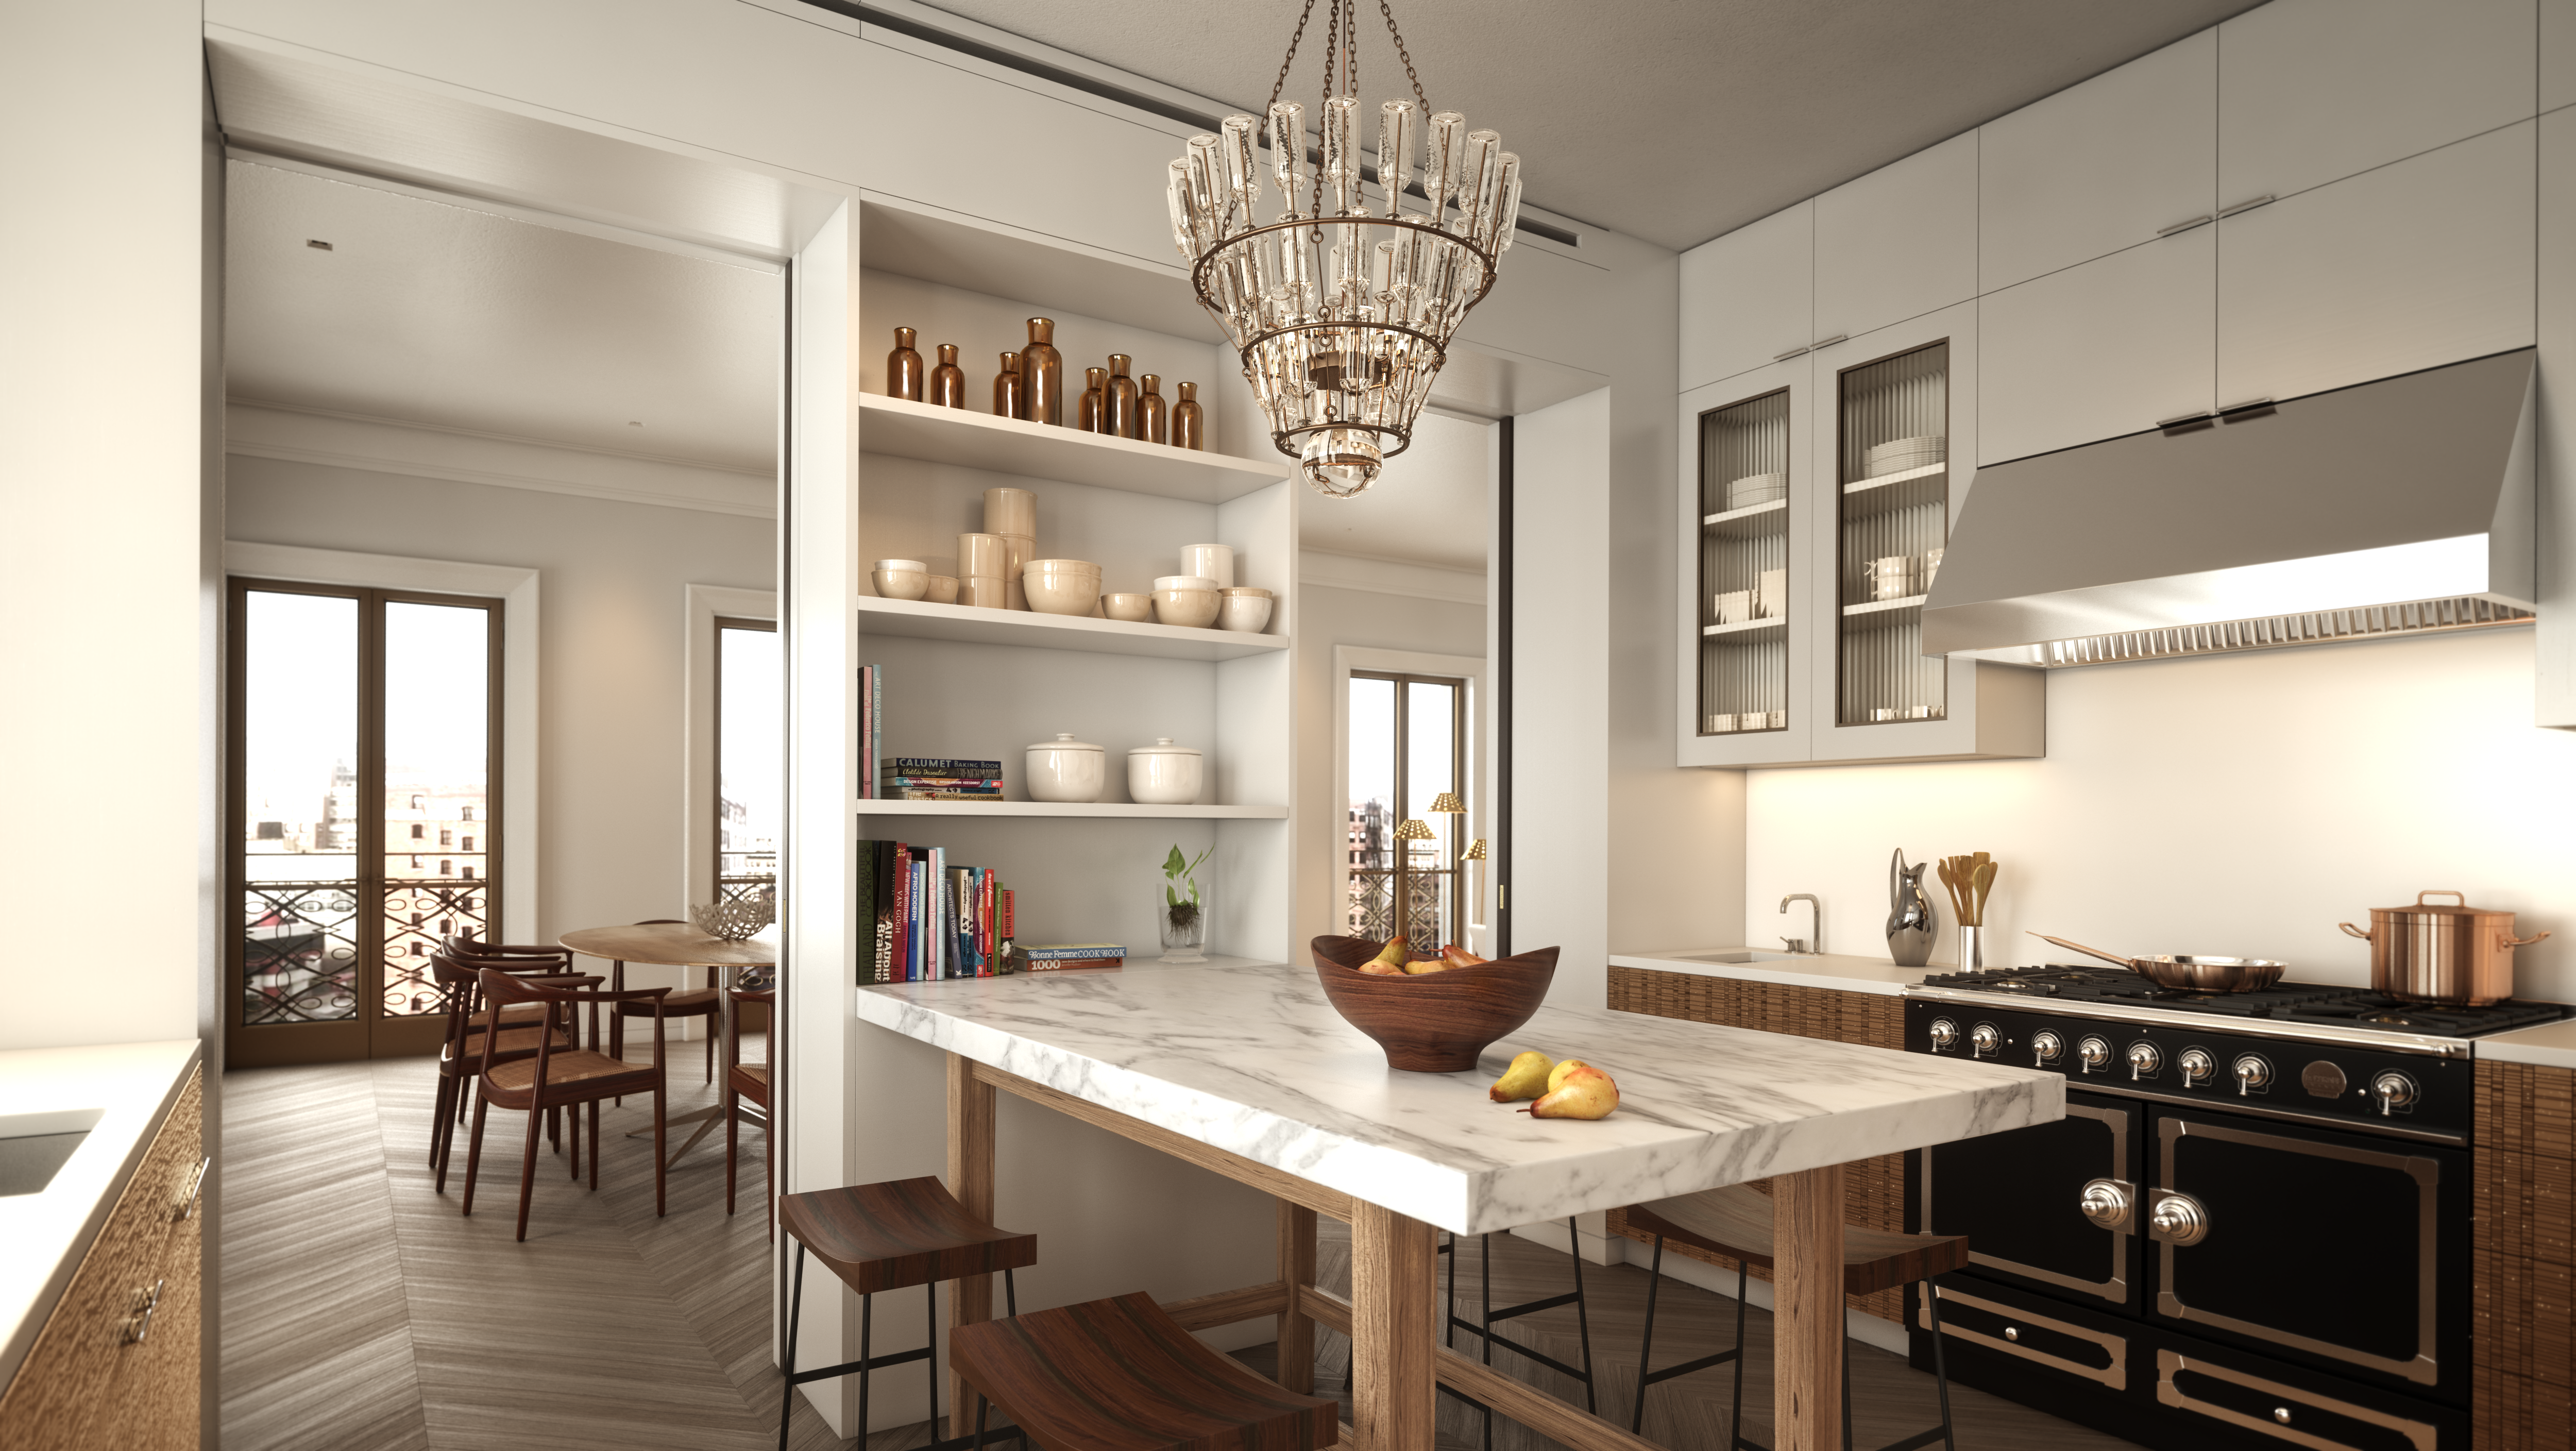 tribeca condos - kitchen